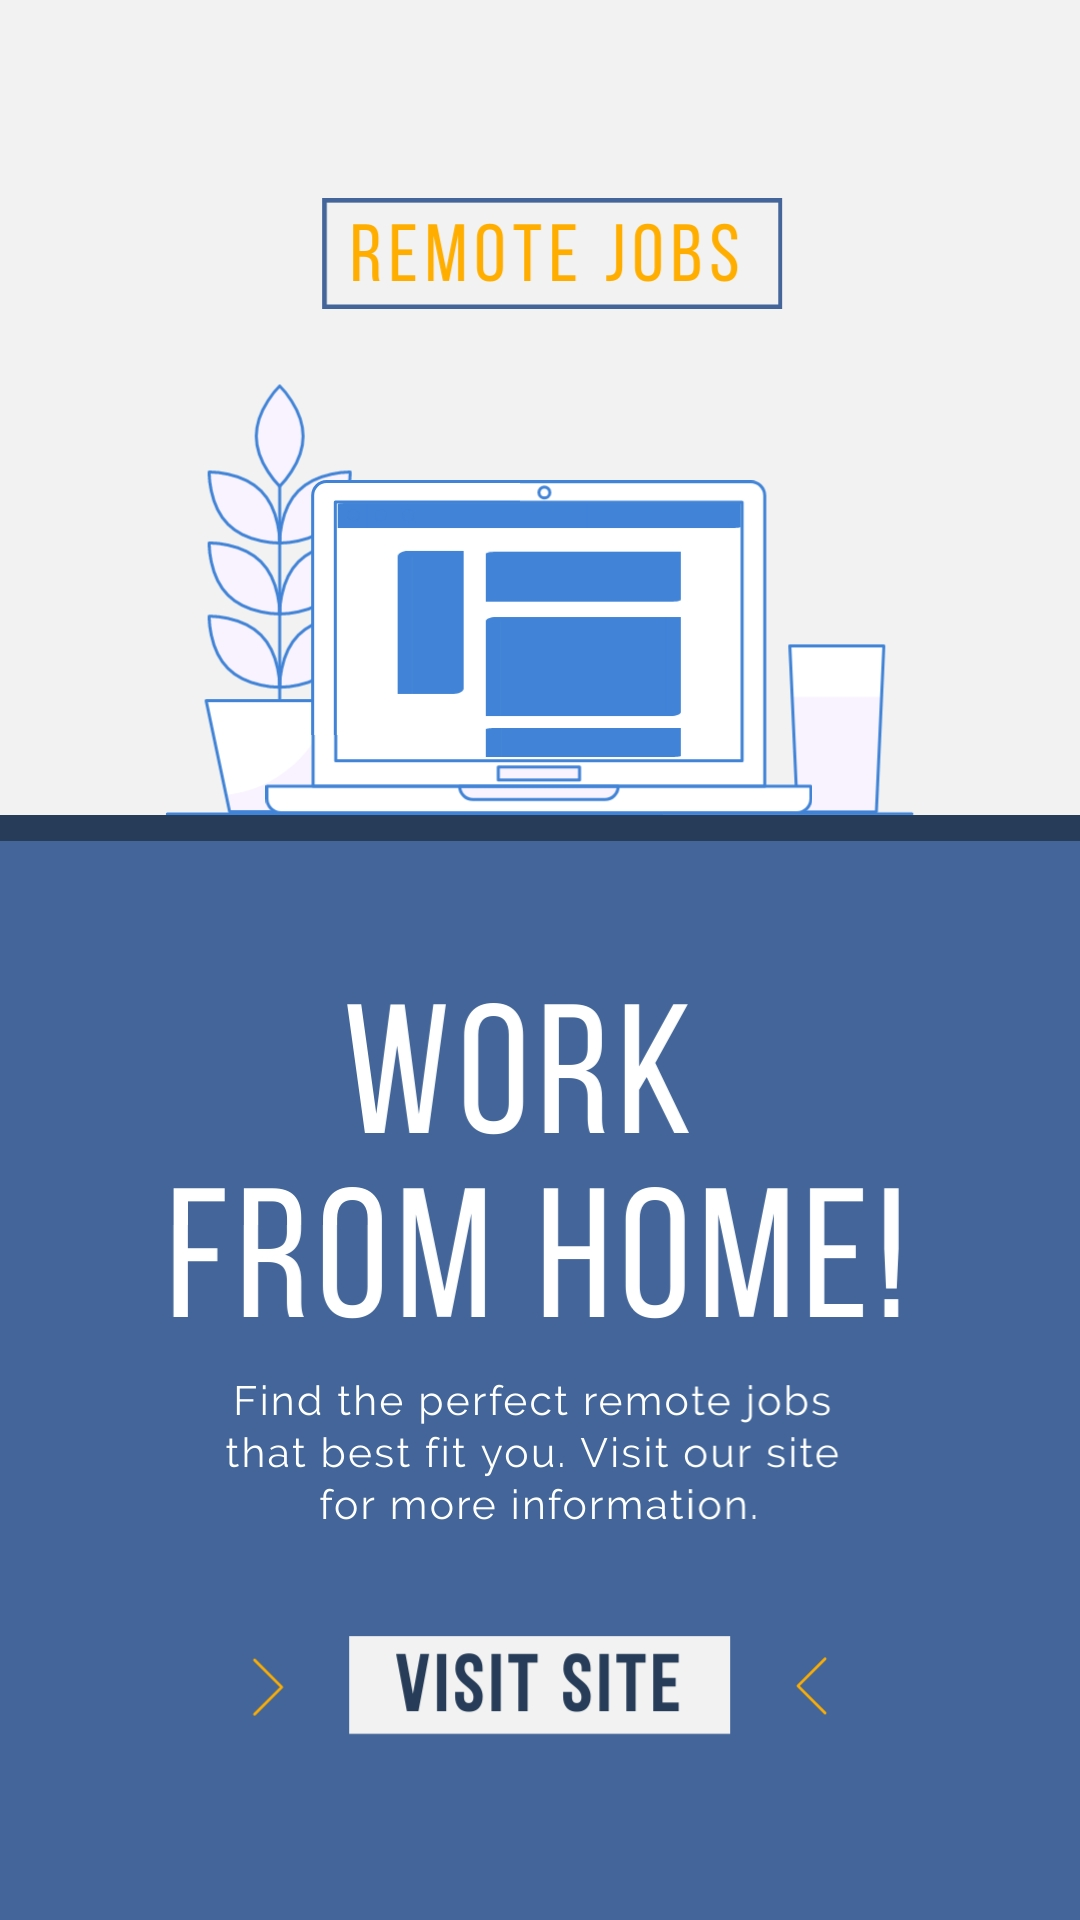 Remote Jobs Vertical Template